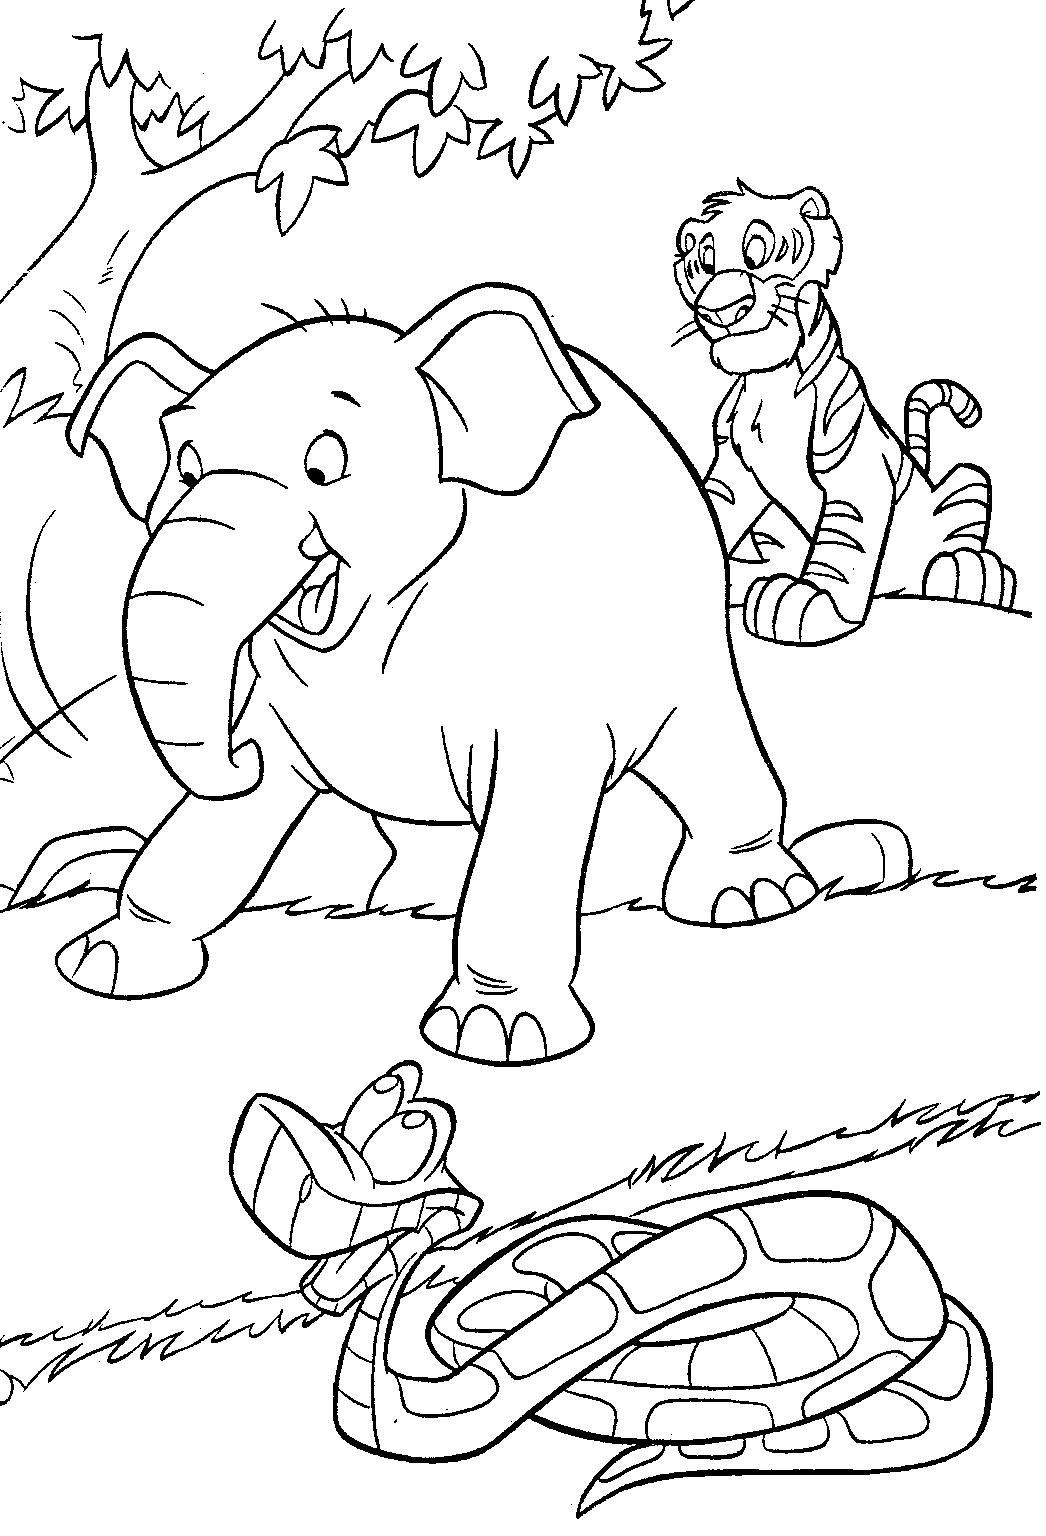 free printable jungle coloring pages jungle coloring pages to download and print for free free pages printable jungle coloring